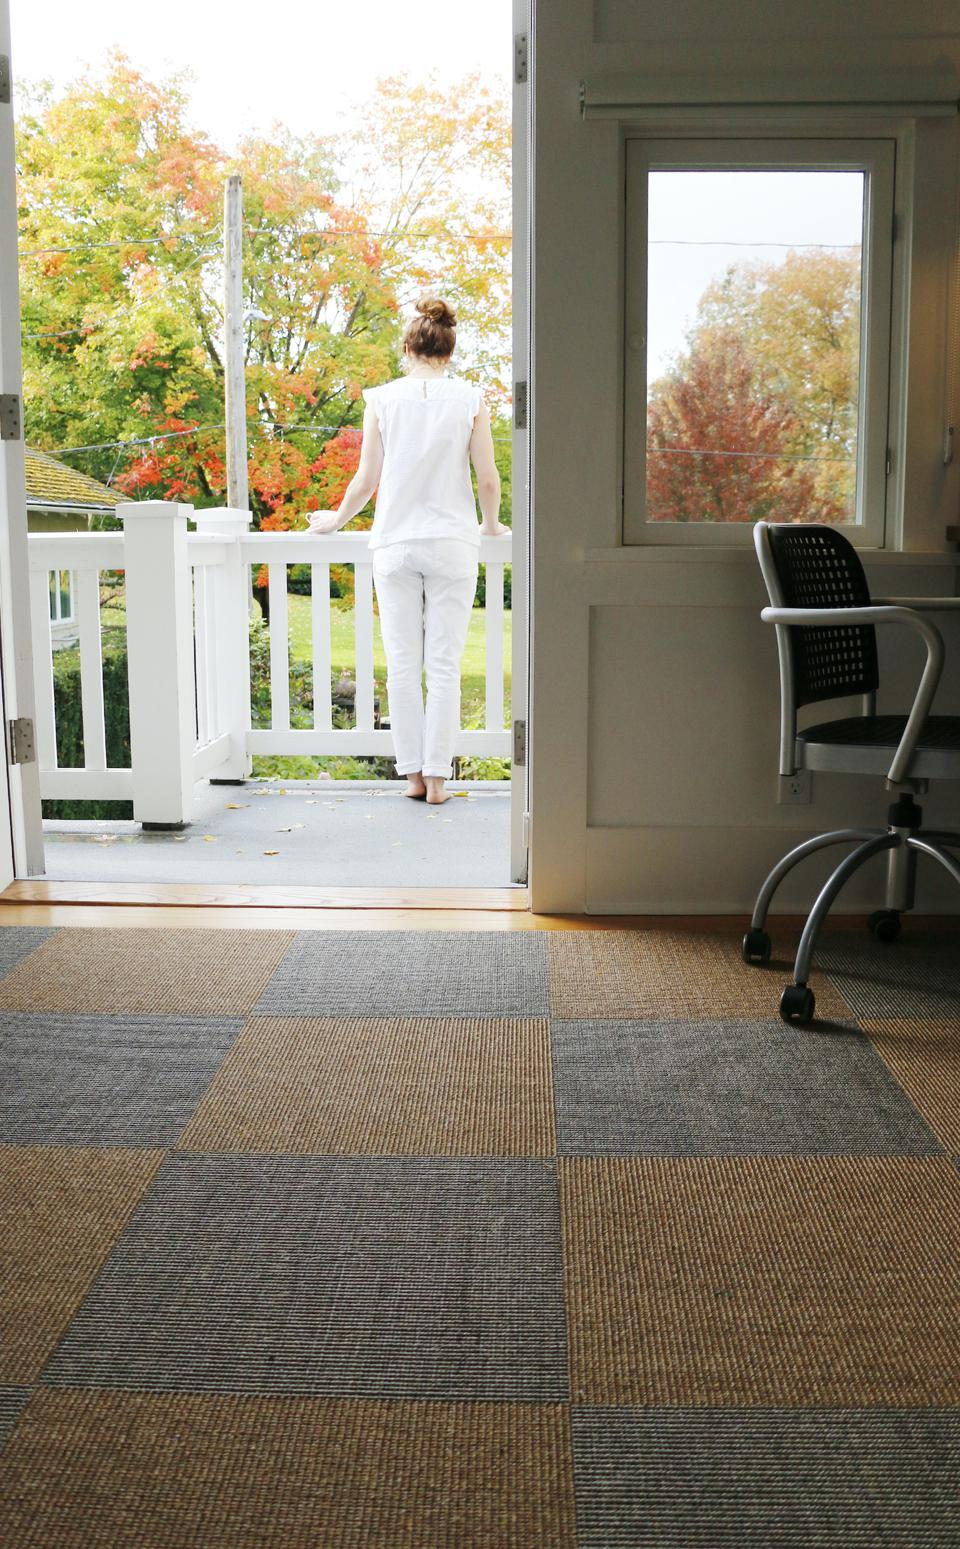 These are Sisal Carpet Tiles in alternating colors functioning as a large rug.